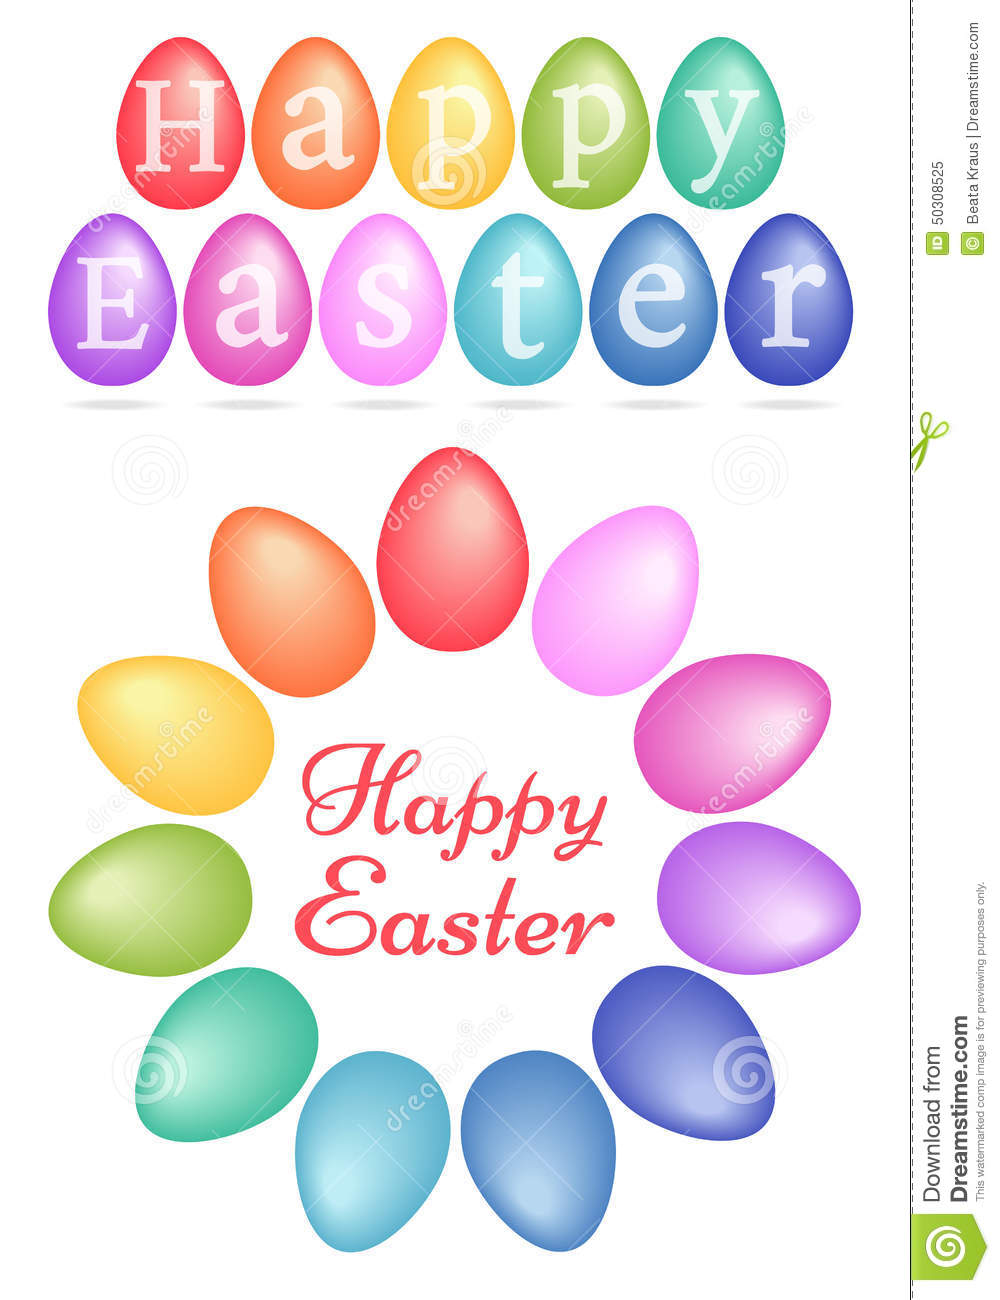 Happy Easter colorful Easter eggs set of vector design elements q956cETV